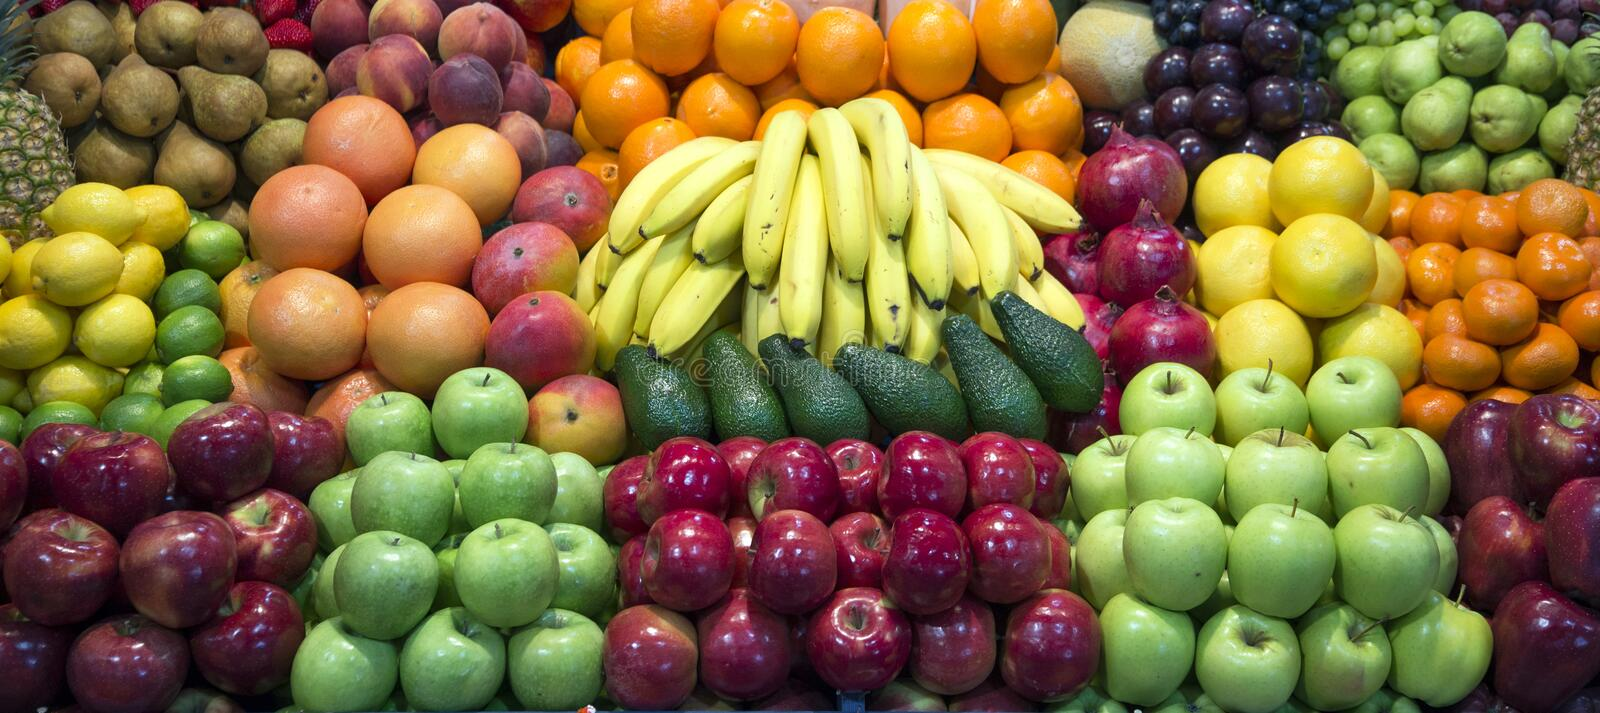 Wide angle photo of many colorful fruits on farmers market stand stock image